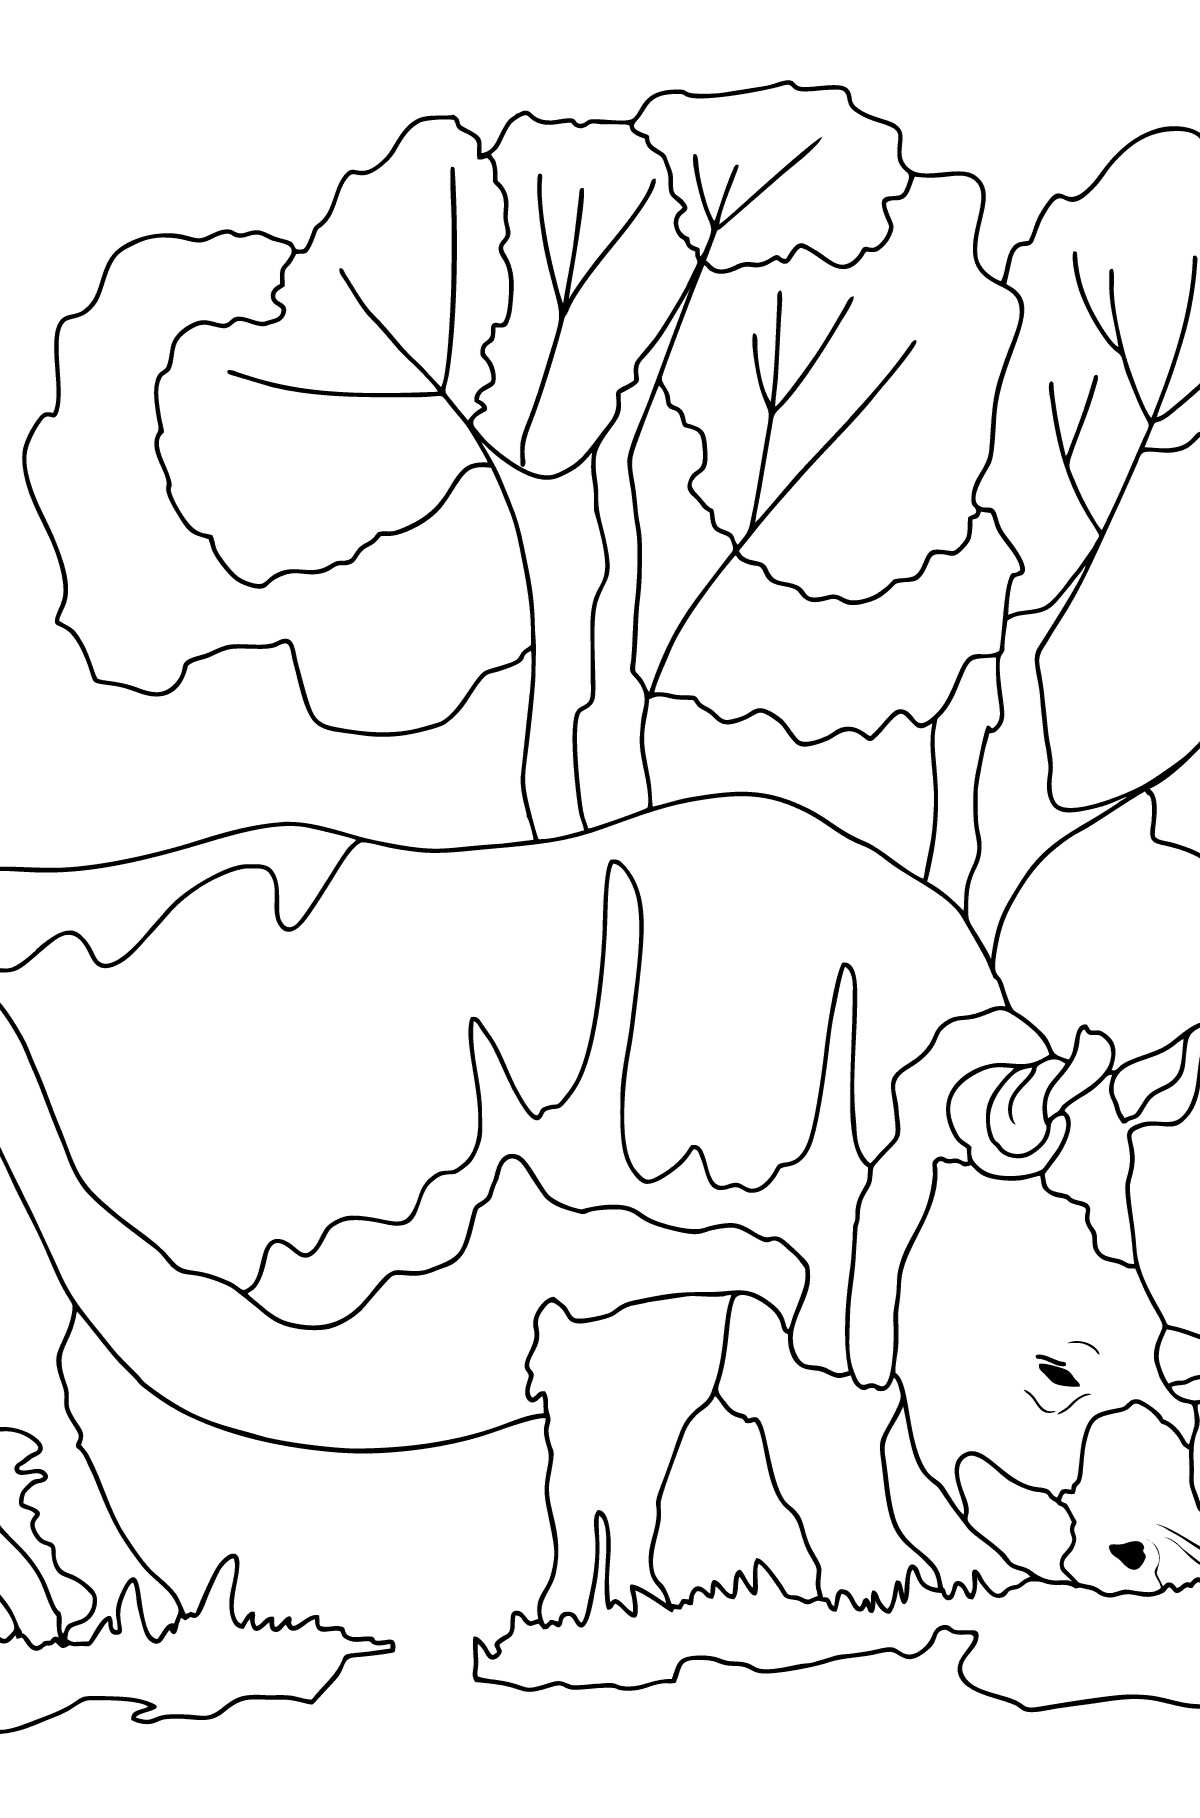 Coloring Page - A Rhino is Eating - Coloring Pages for Children